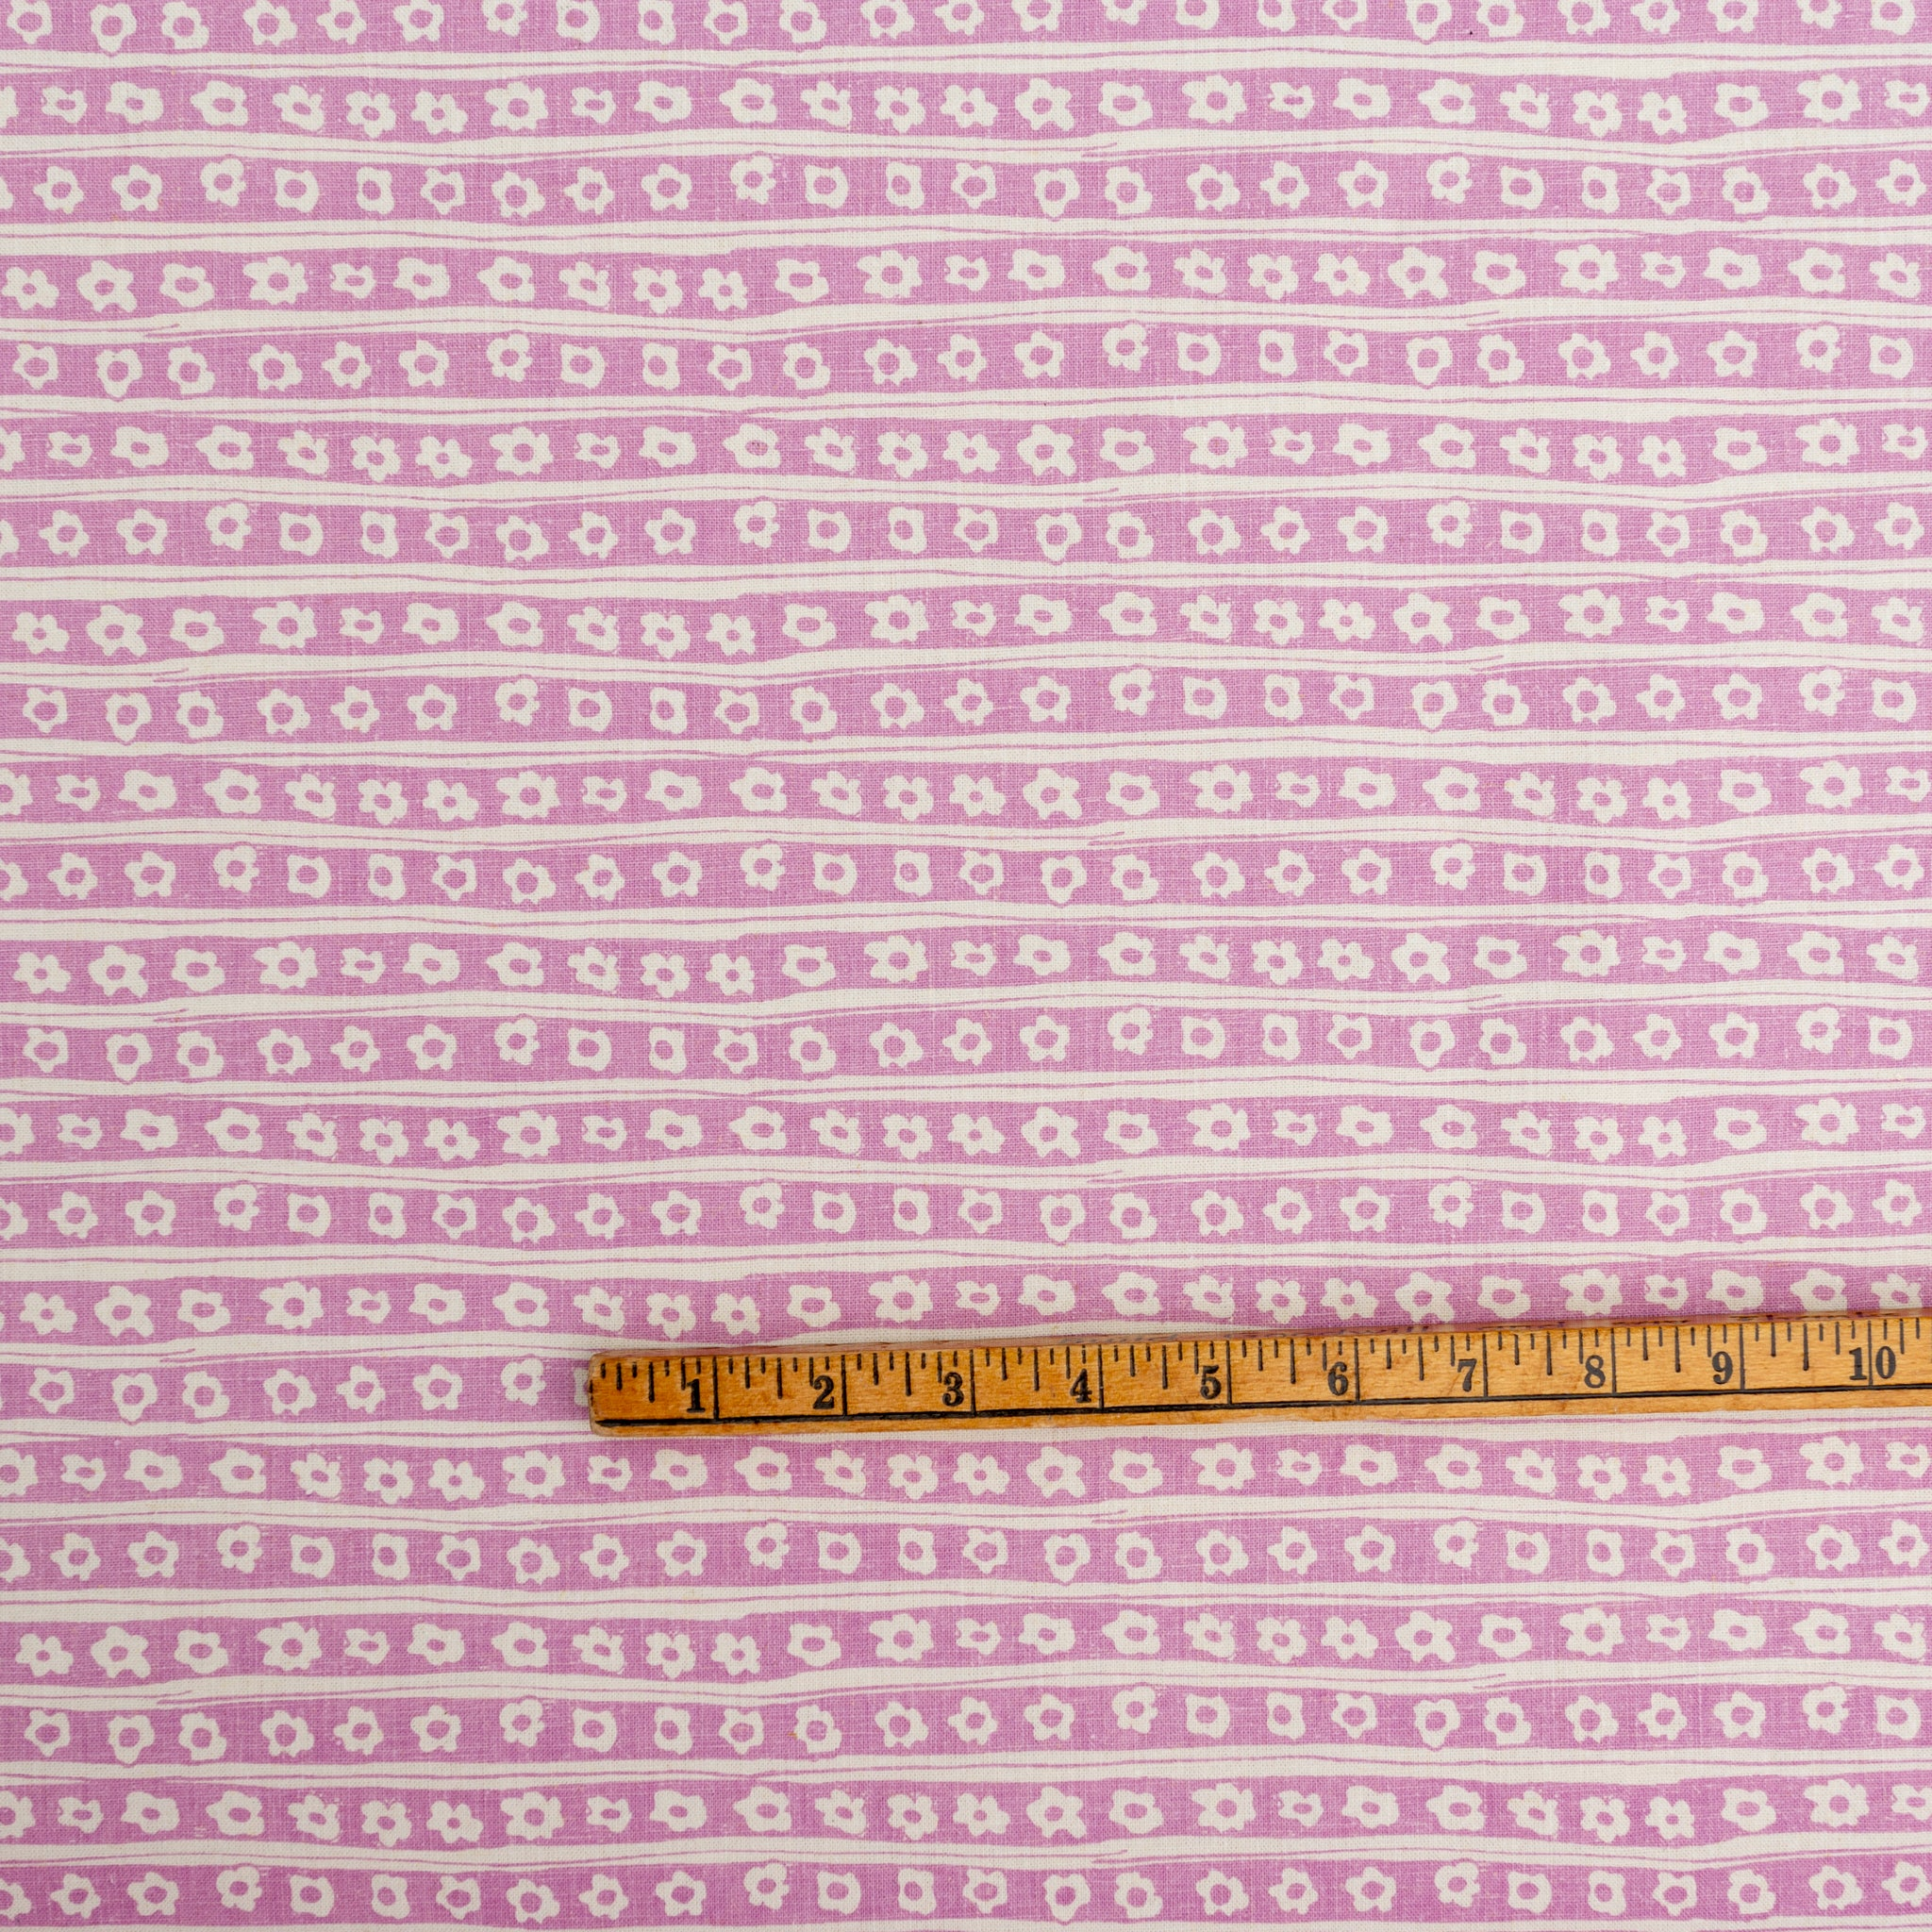 Screen printed fabric yardage with daisy pinstripes and ruler for scale